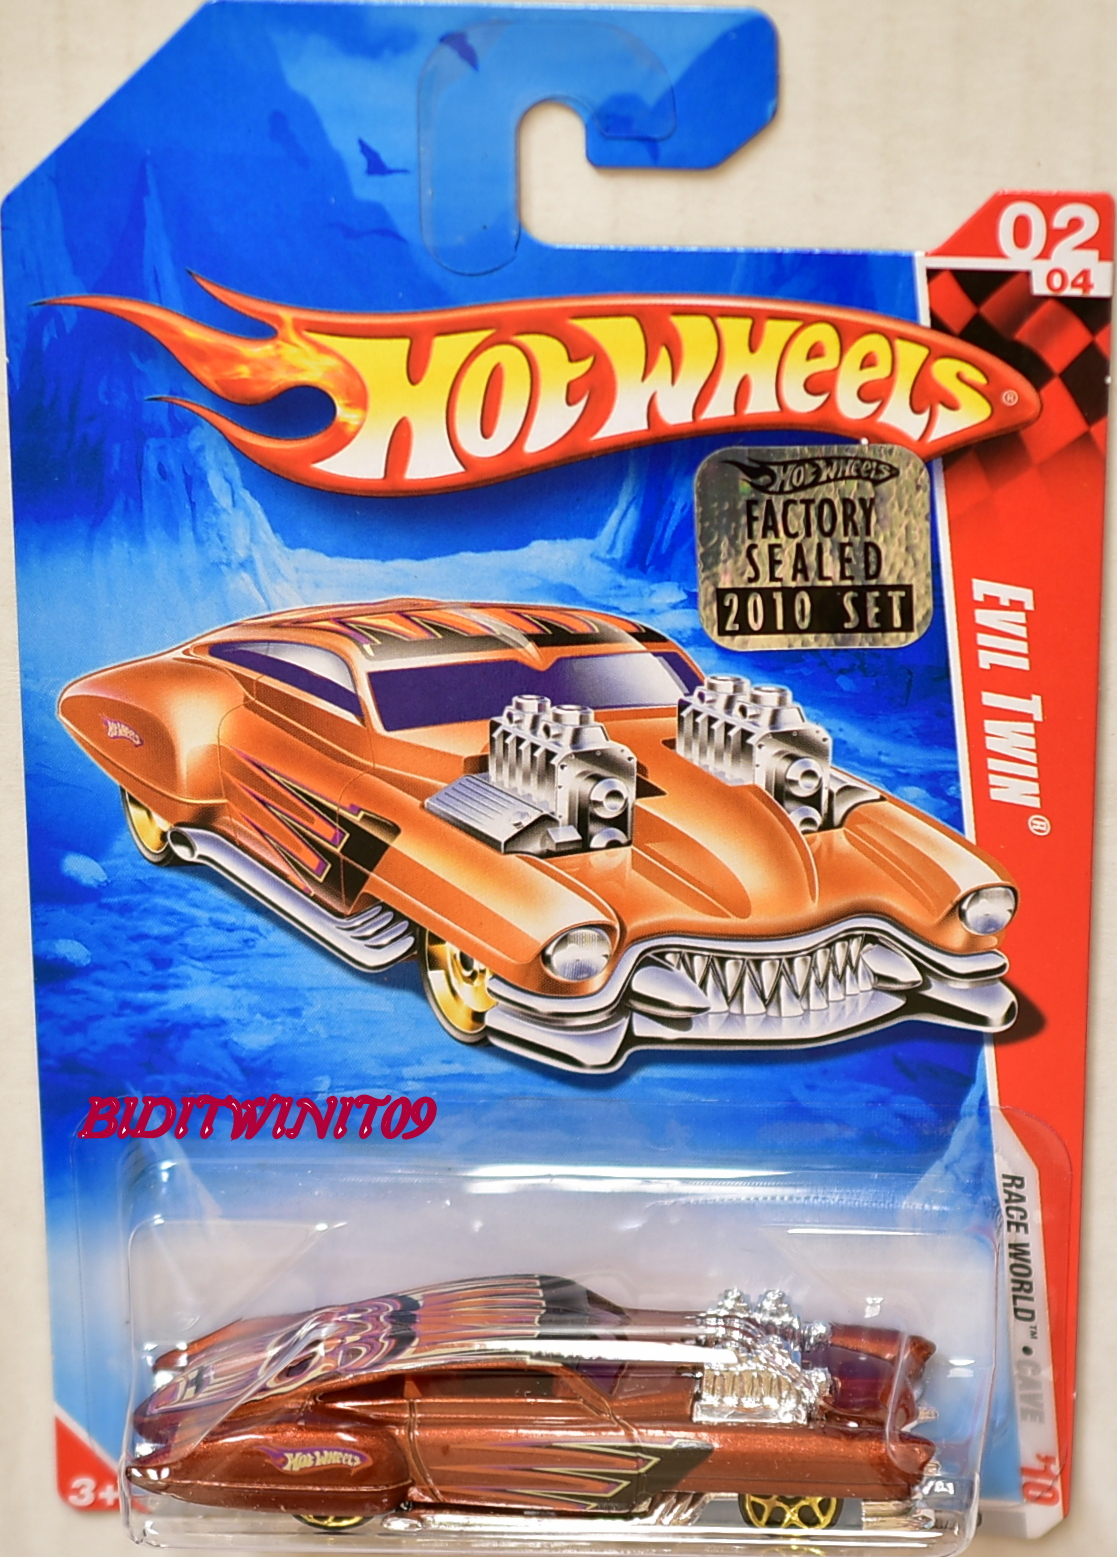 HOT WHEELS 2010 RACE WORLD EVIL TWIN #02/04 FACTORY SEALED E+